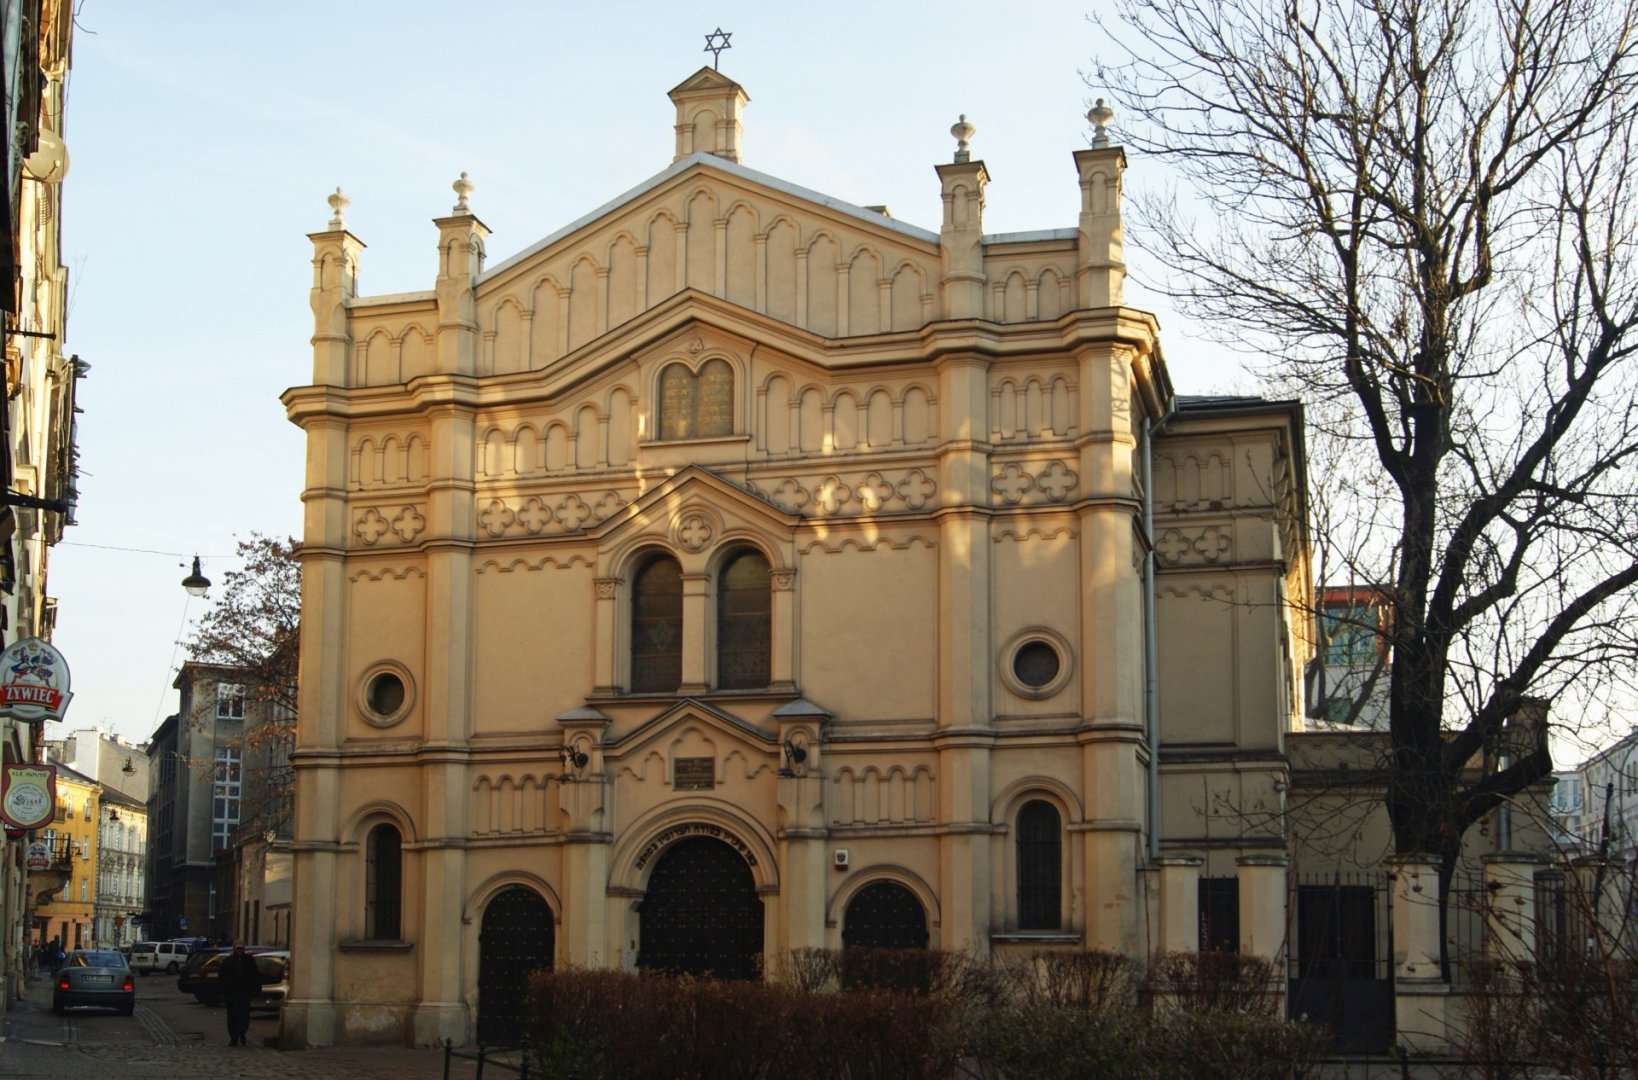 The biggest attractions of Kazimierz and Podgórze districts in Kraków